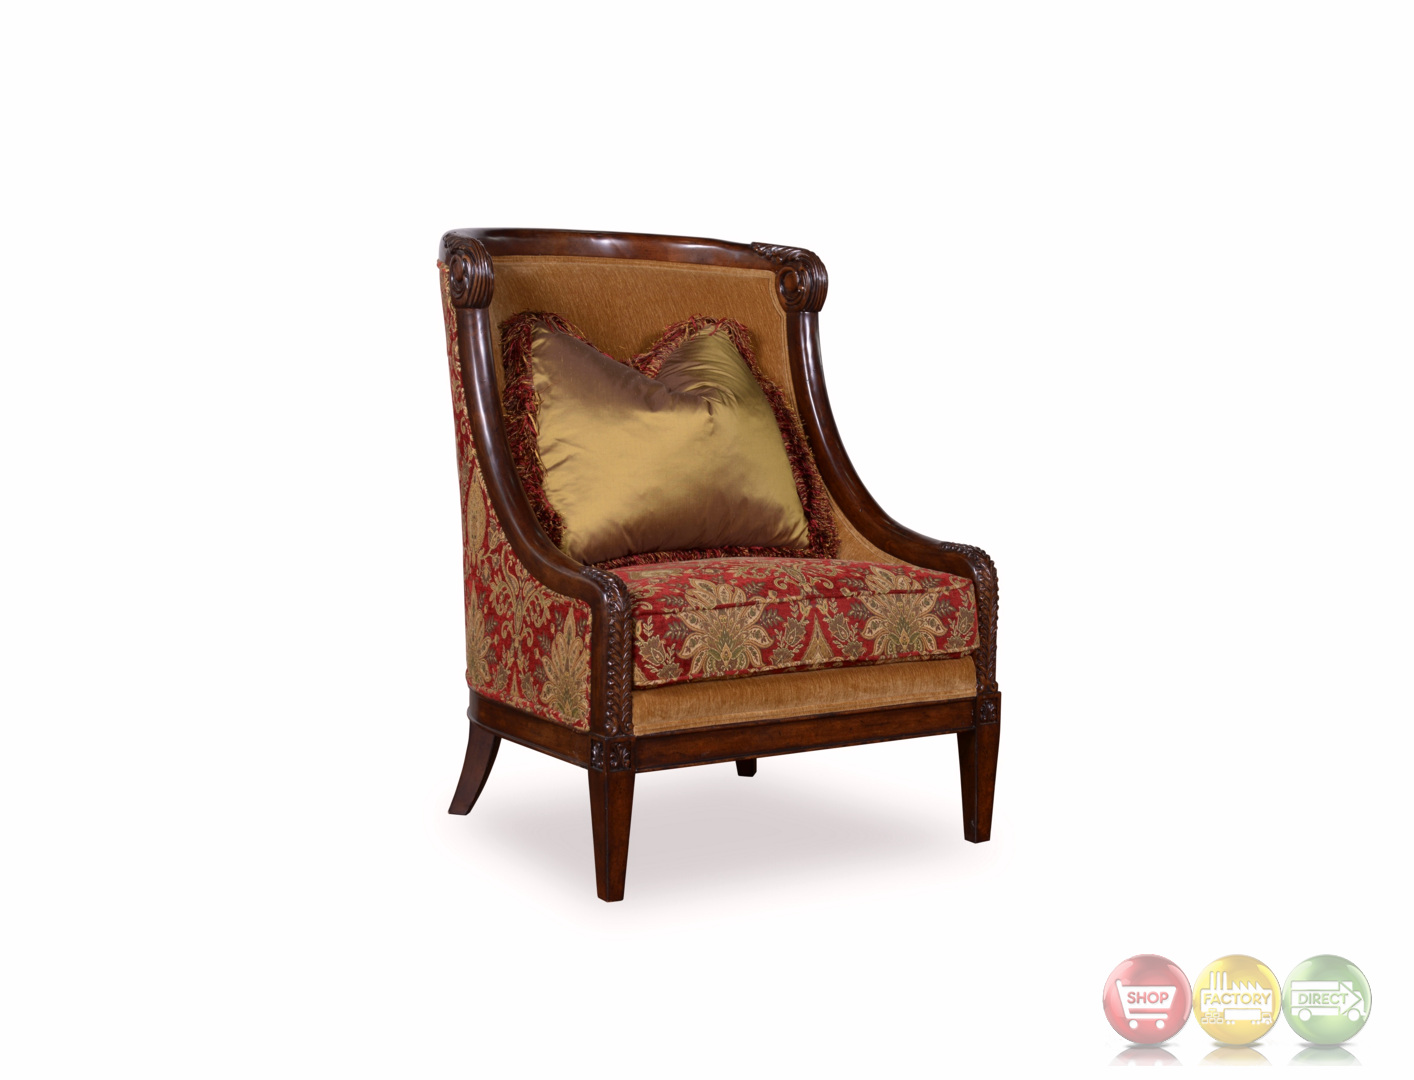 Red And White Accent Chair Giovanna Caramel Accent Chair With Red Damask And Wood Accents